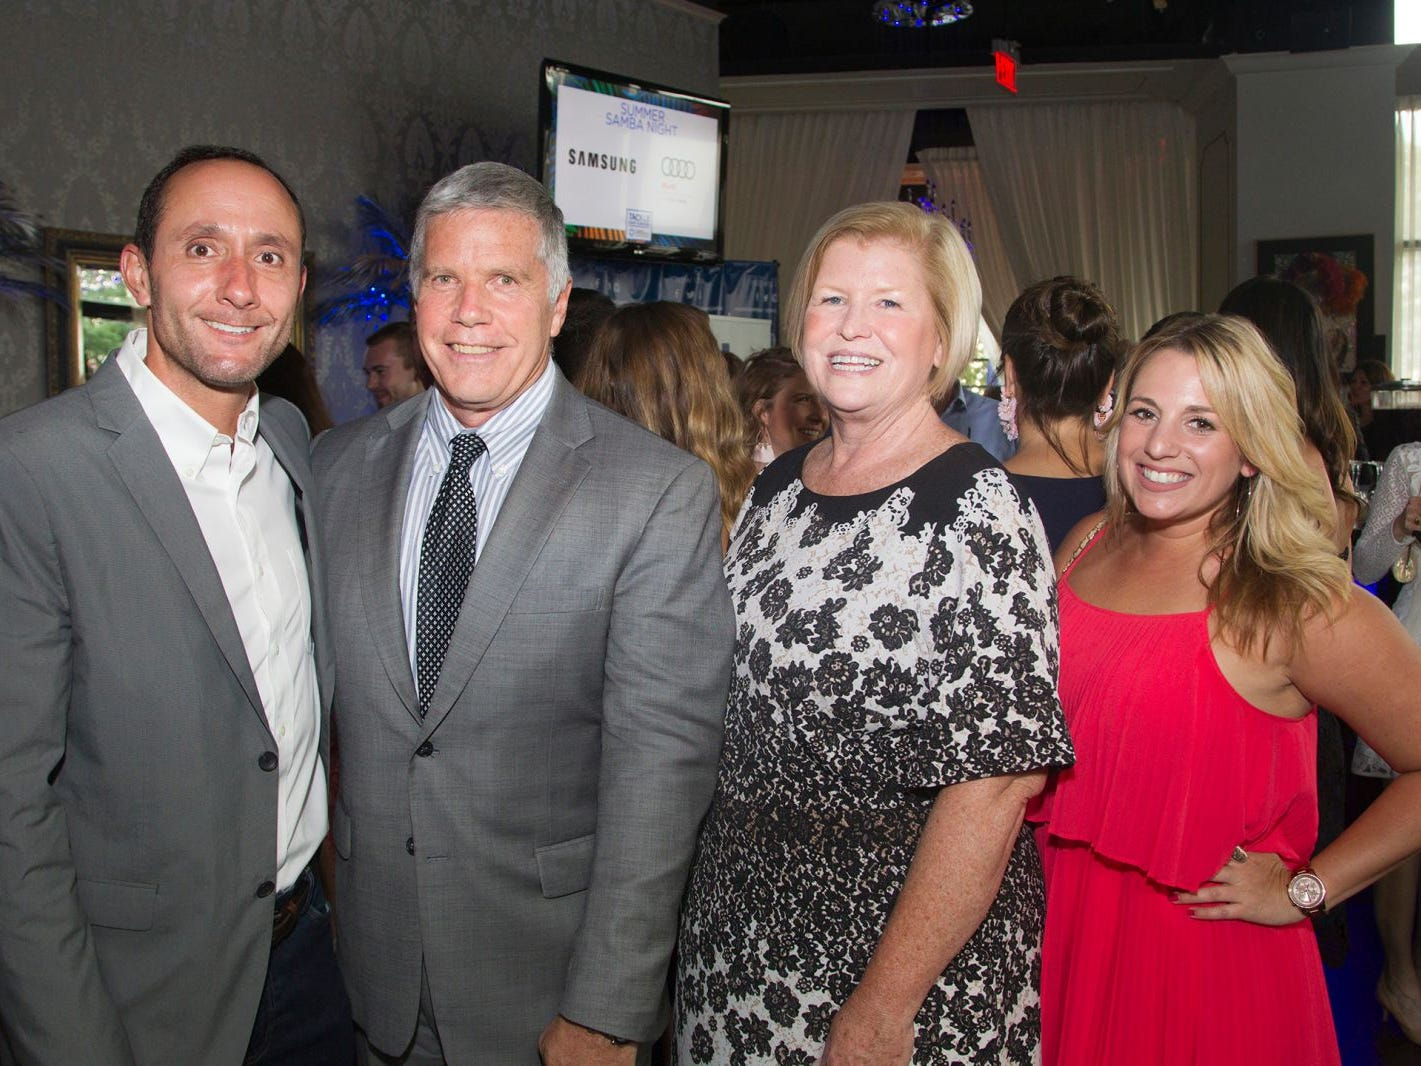 New York Red Bulls GM Marc de Grandpre, Peter Hughes, Helen Cunning, Jamie Sussman. Summer Samba Night benefitting Tackle Kids Cancer hosted by Cara Robles, Luis Robles (NY Red Bulls Goalkeeper), Jennifer Farber, and Dr. Michael Farber at Son Cubano in West New York. 08/08/2018